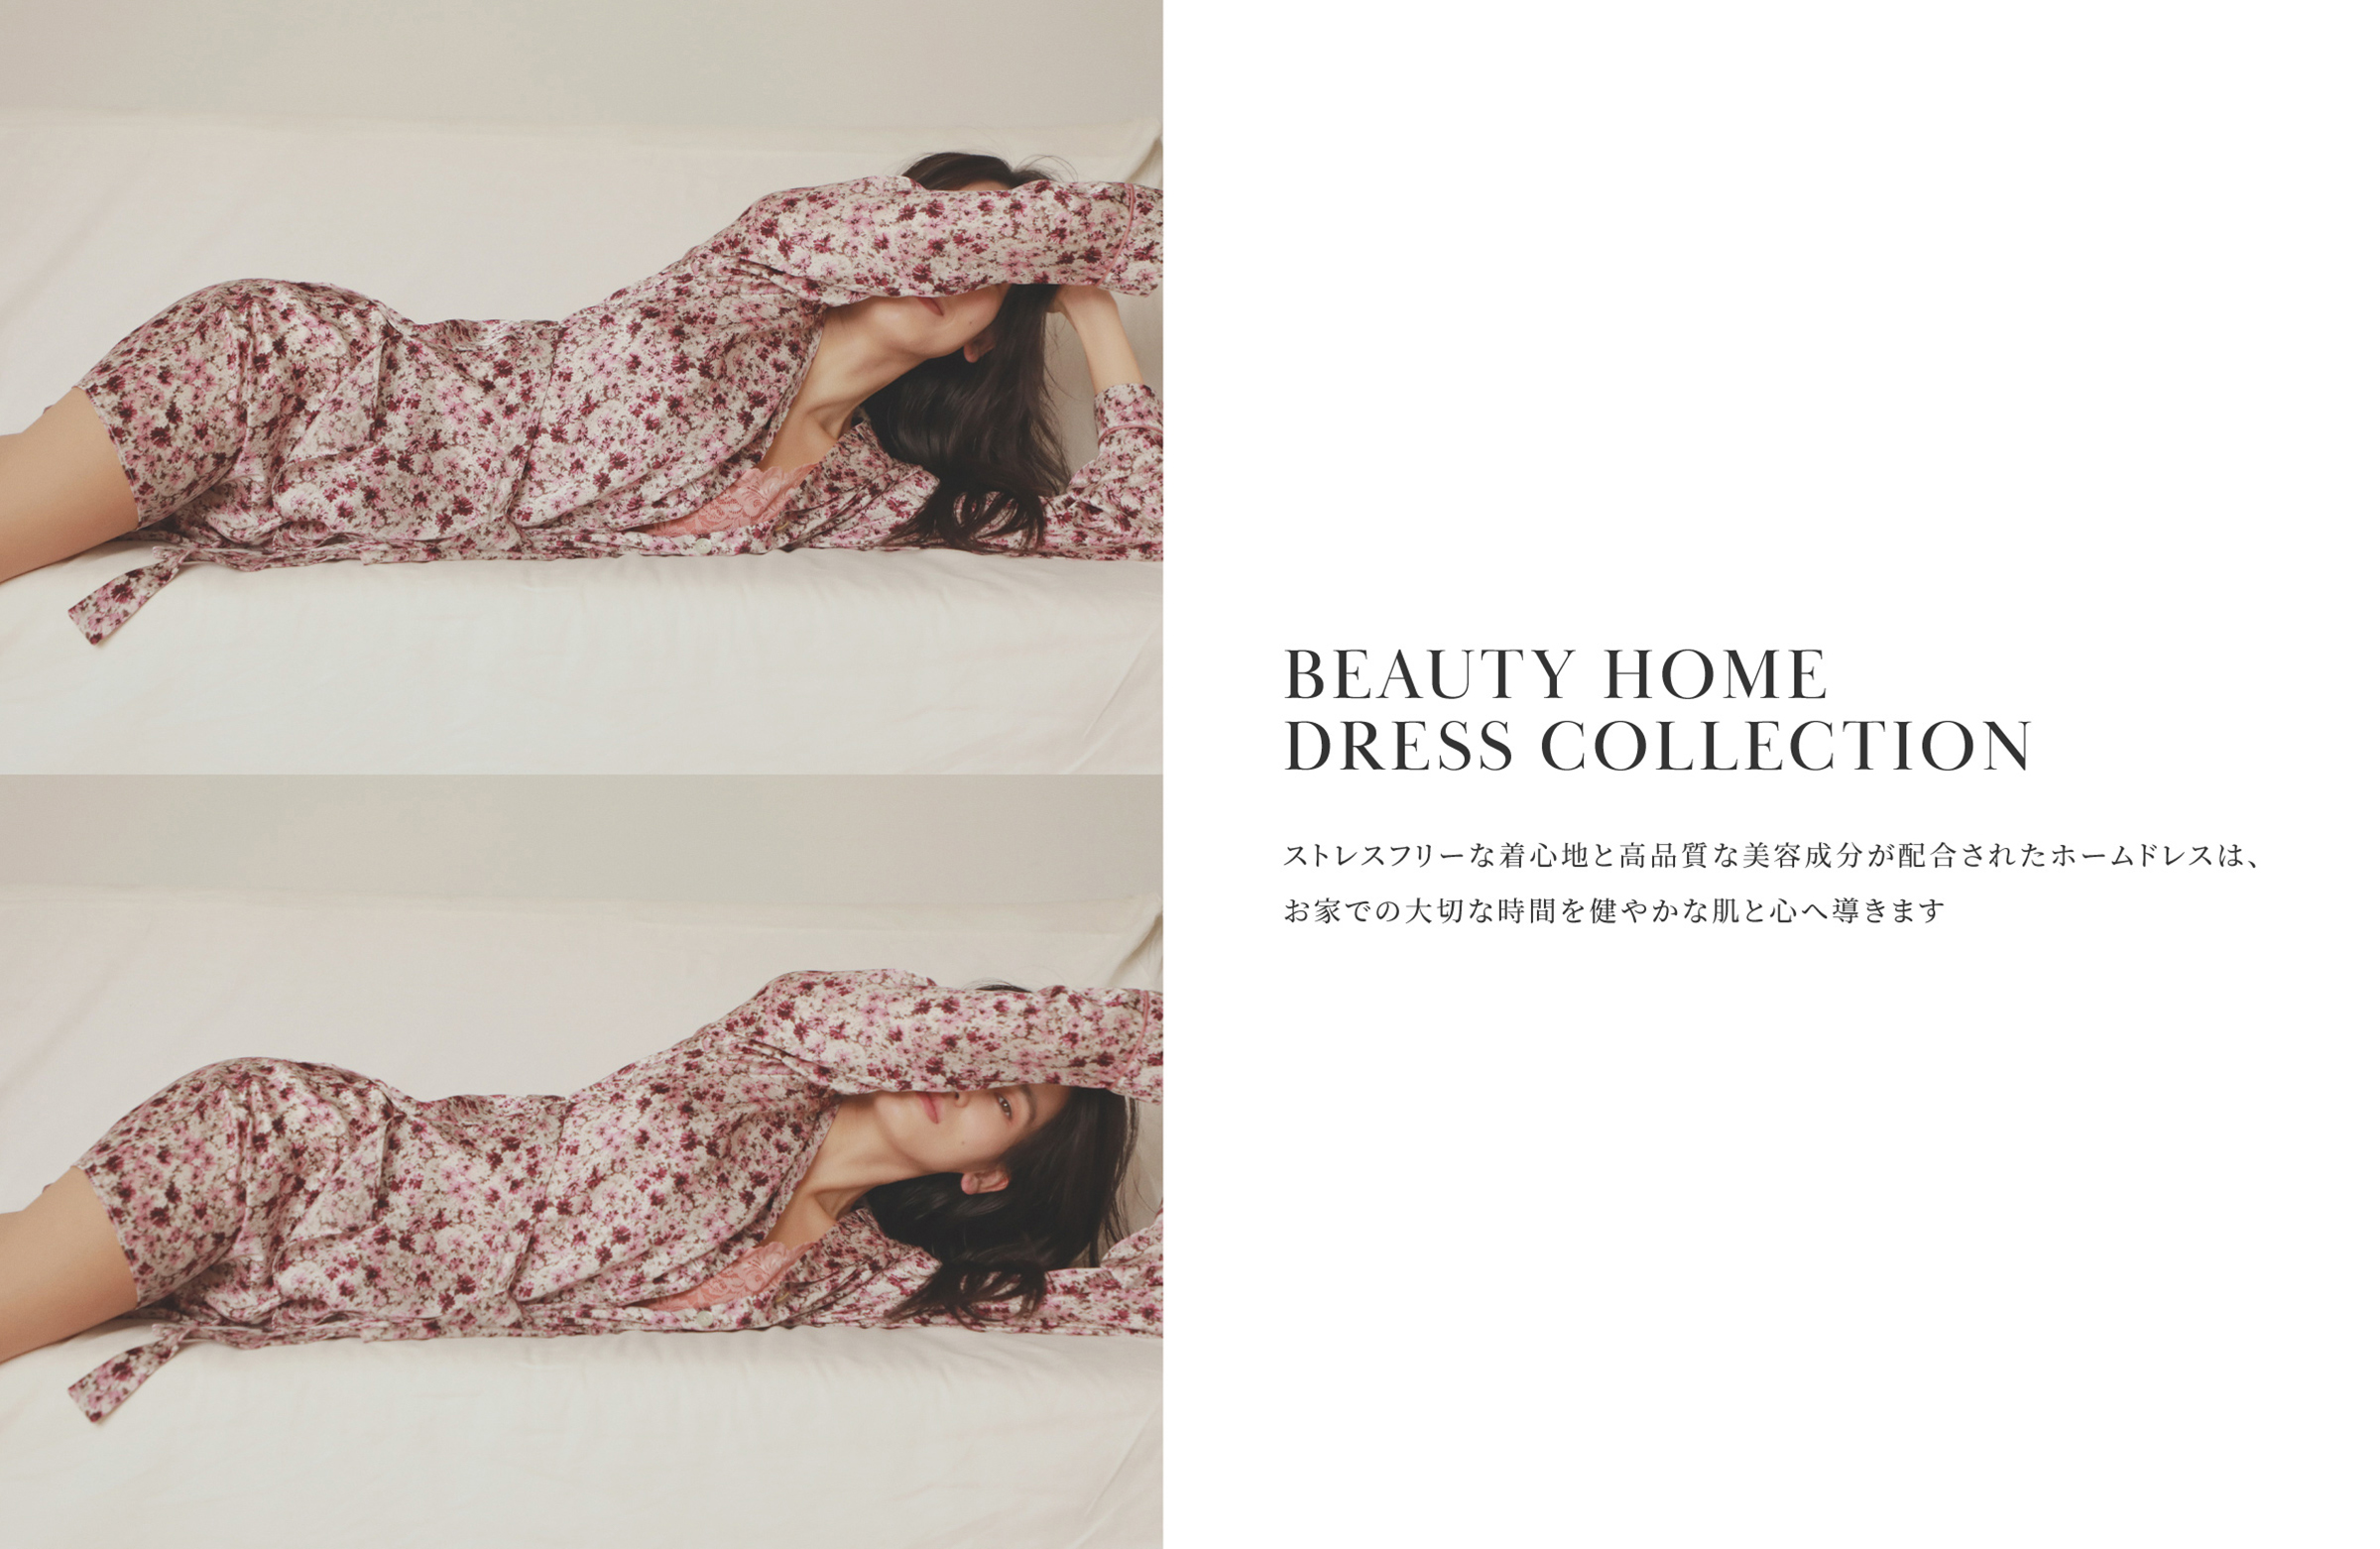 SNIDEL HOME BEAUTY HOME DRESS COLLECTION